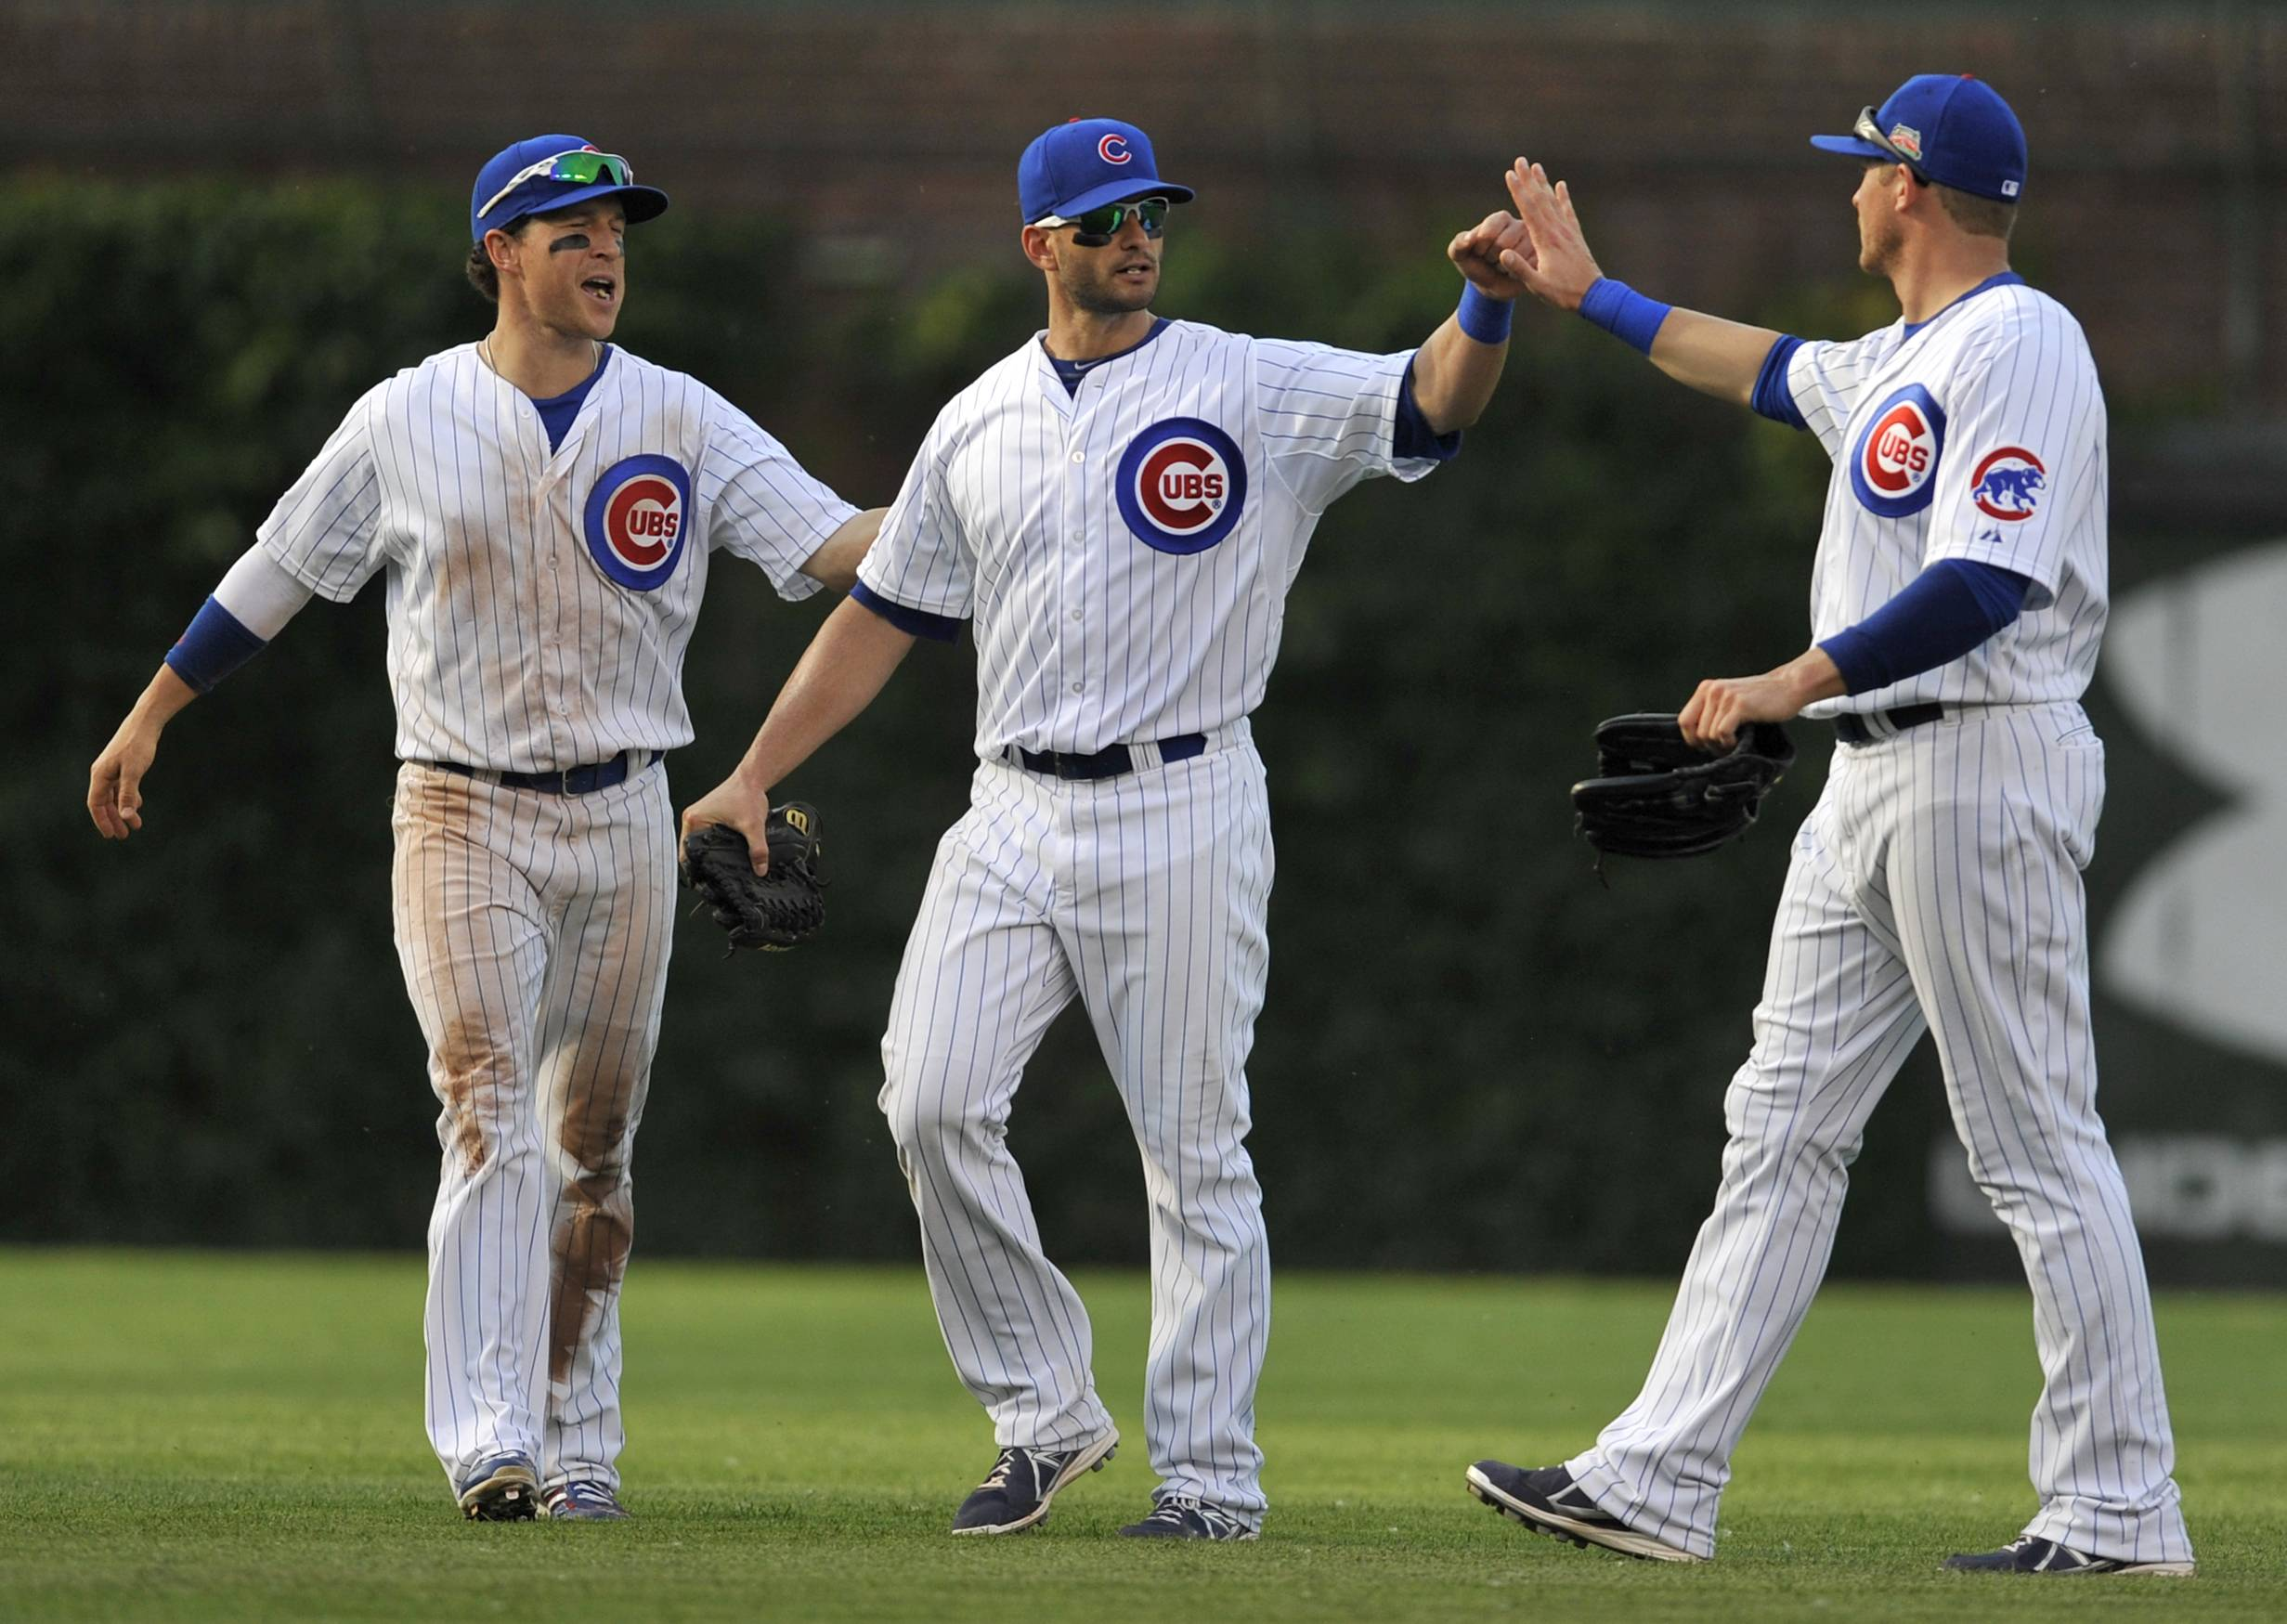 When will Cubs get out of spin cycle?